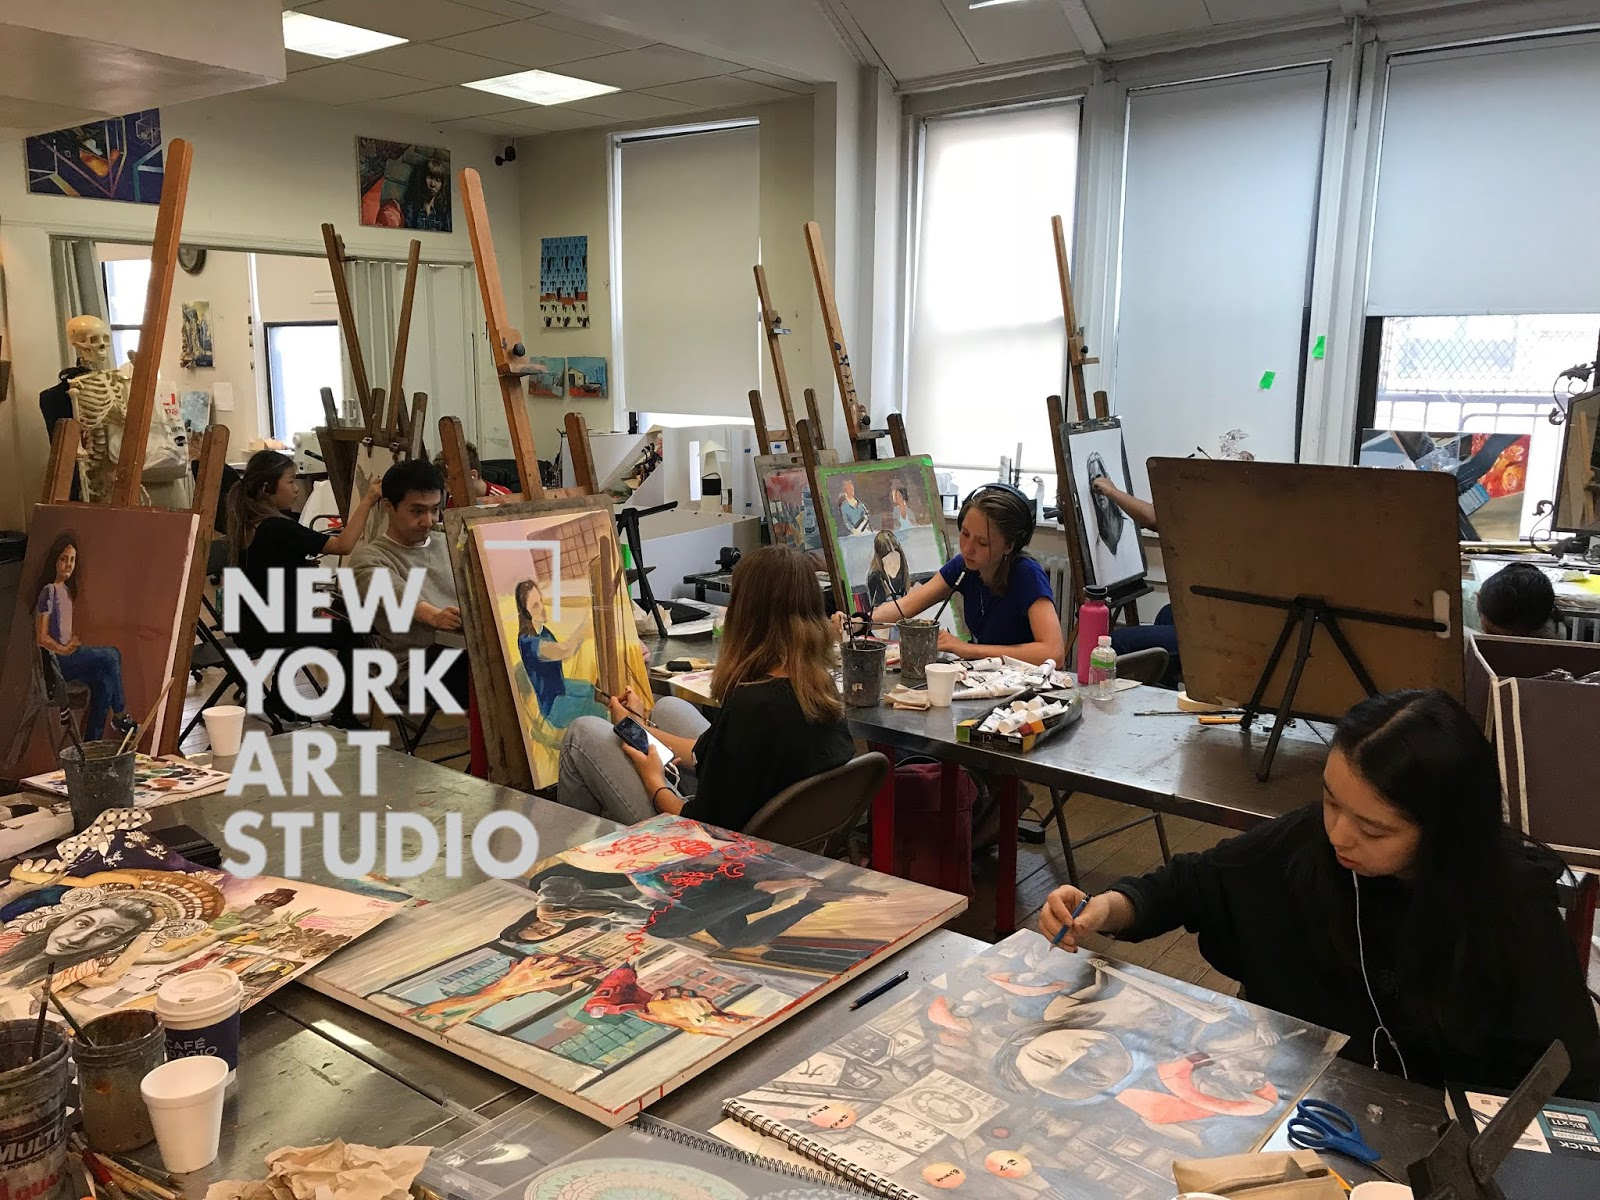 Student Accepted To Parsons The New School For Bachelor Of Fine Arts Best Online Art Courses New York Art Studio